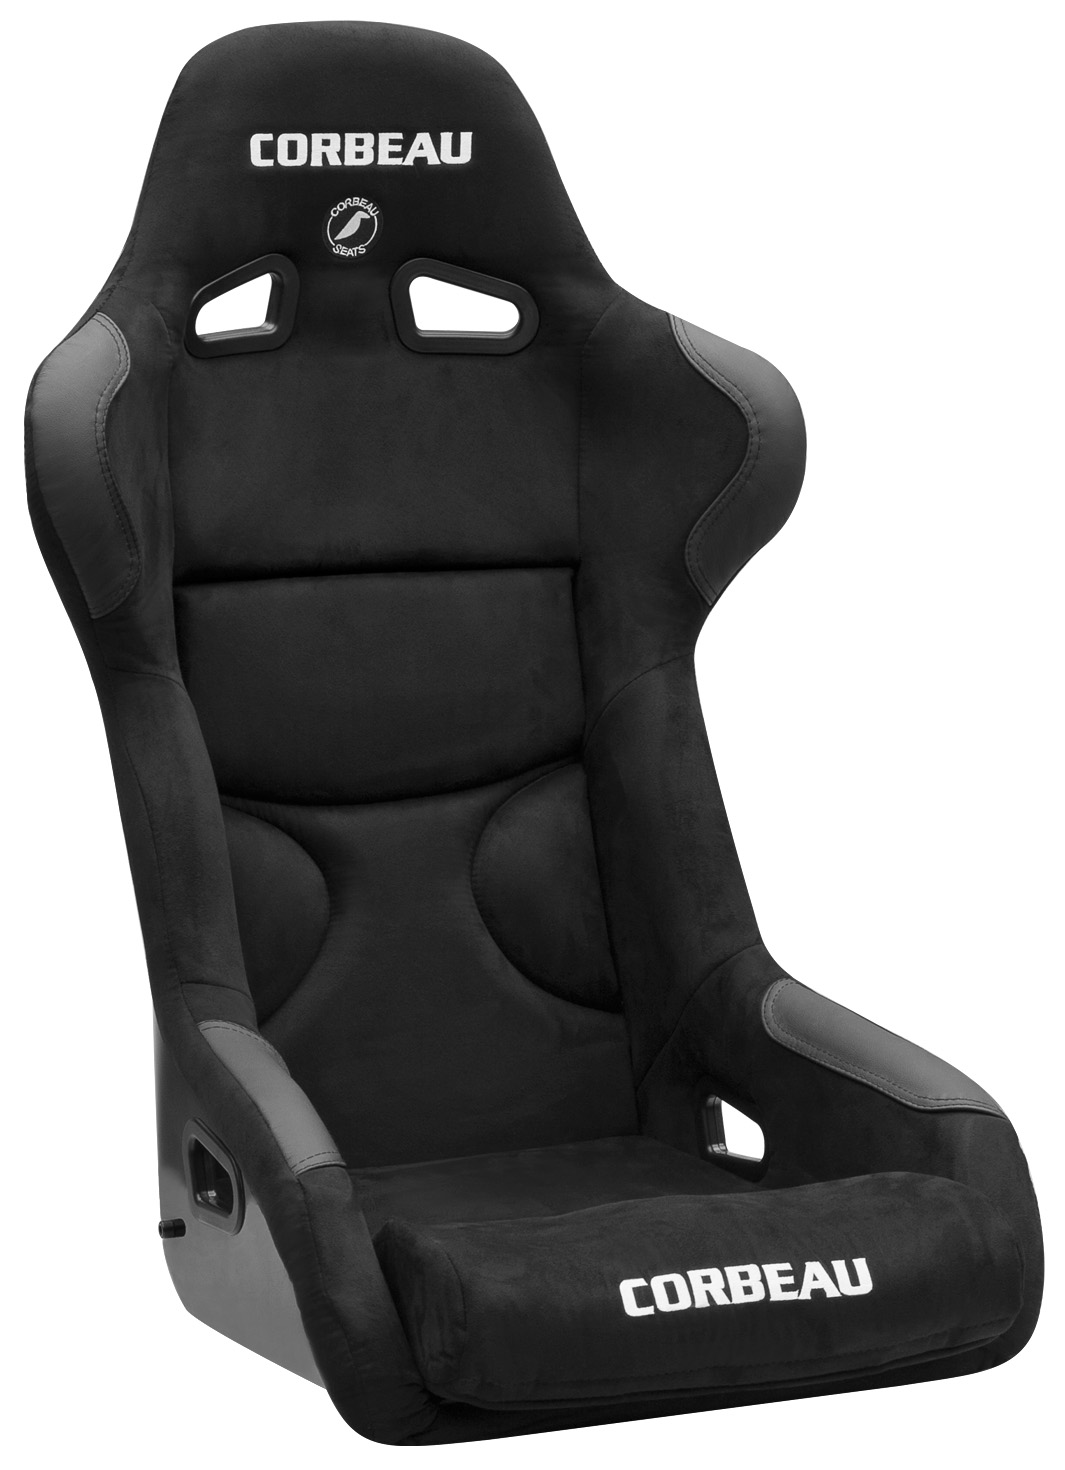 Corbeau FX1  Racing Seat, Black Microsuede Pro, S29501P